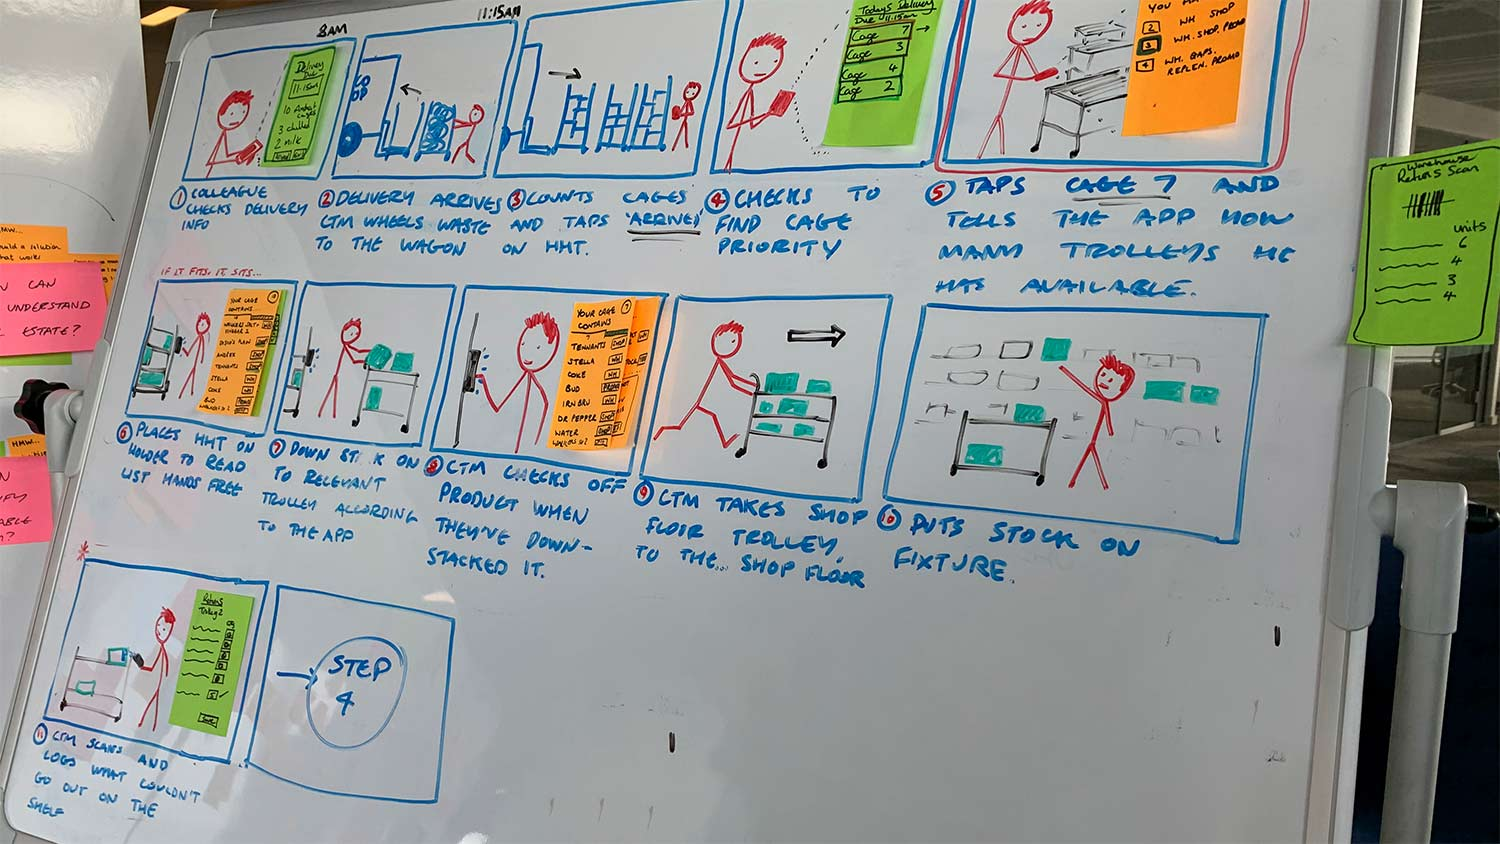 A storyboard helps you consider how your idea works in context.